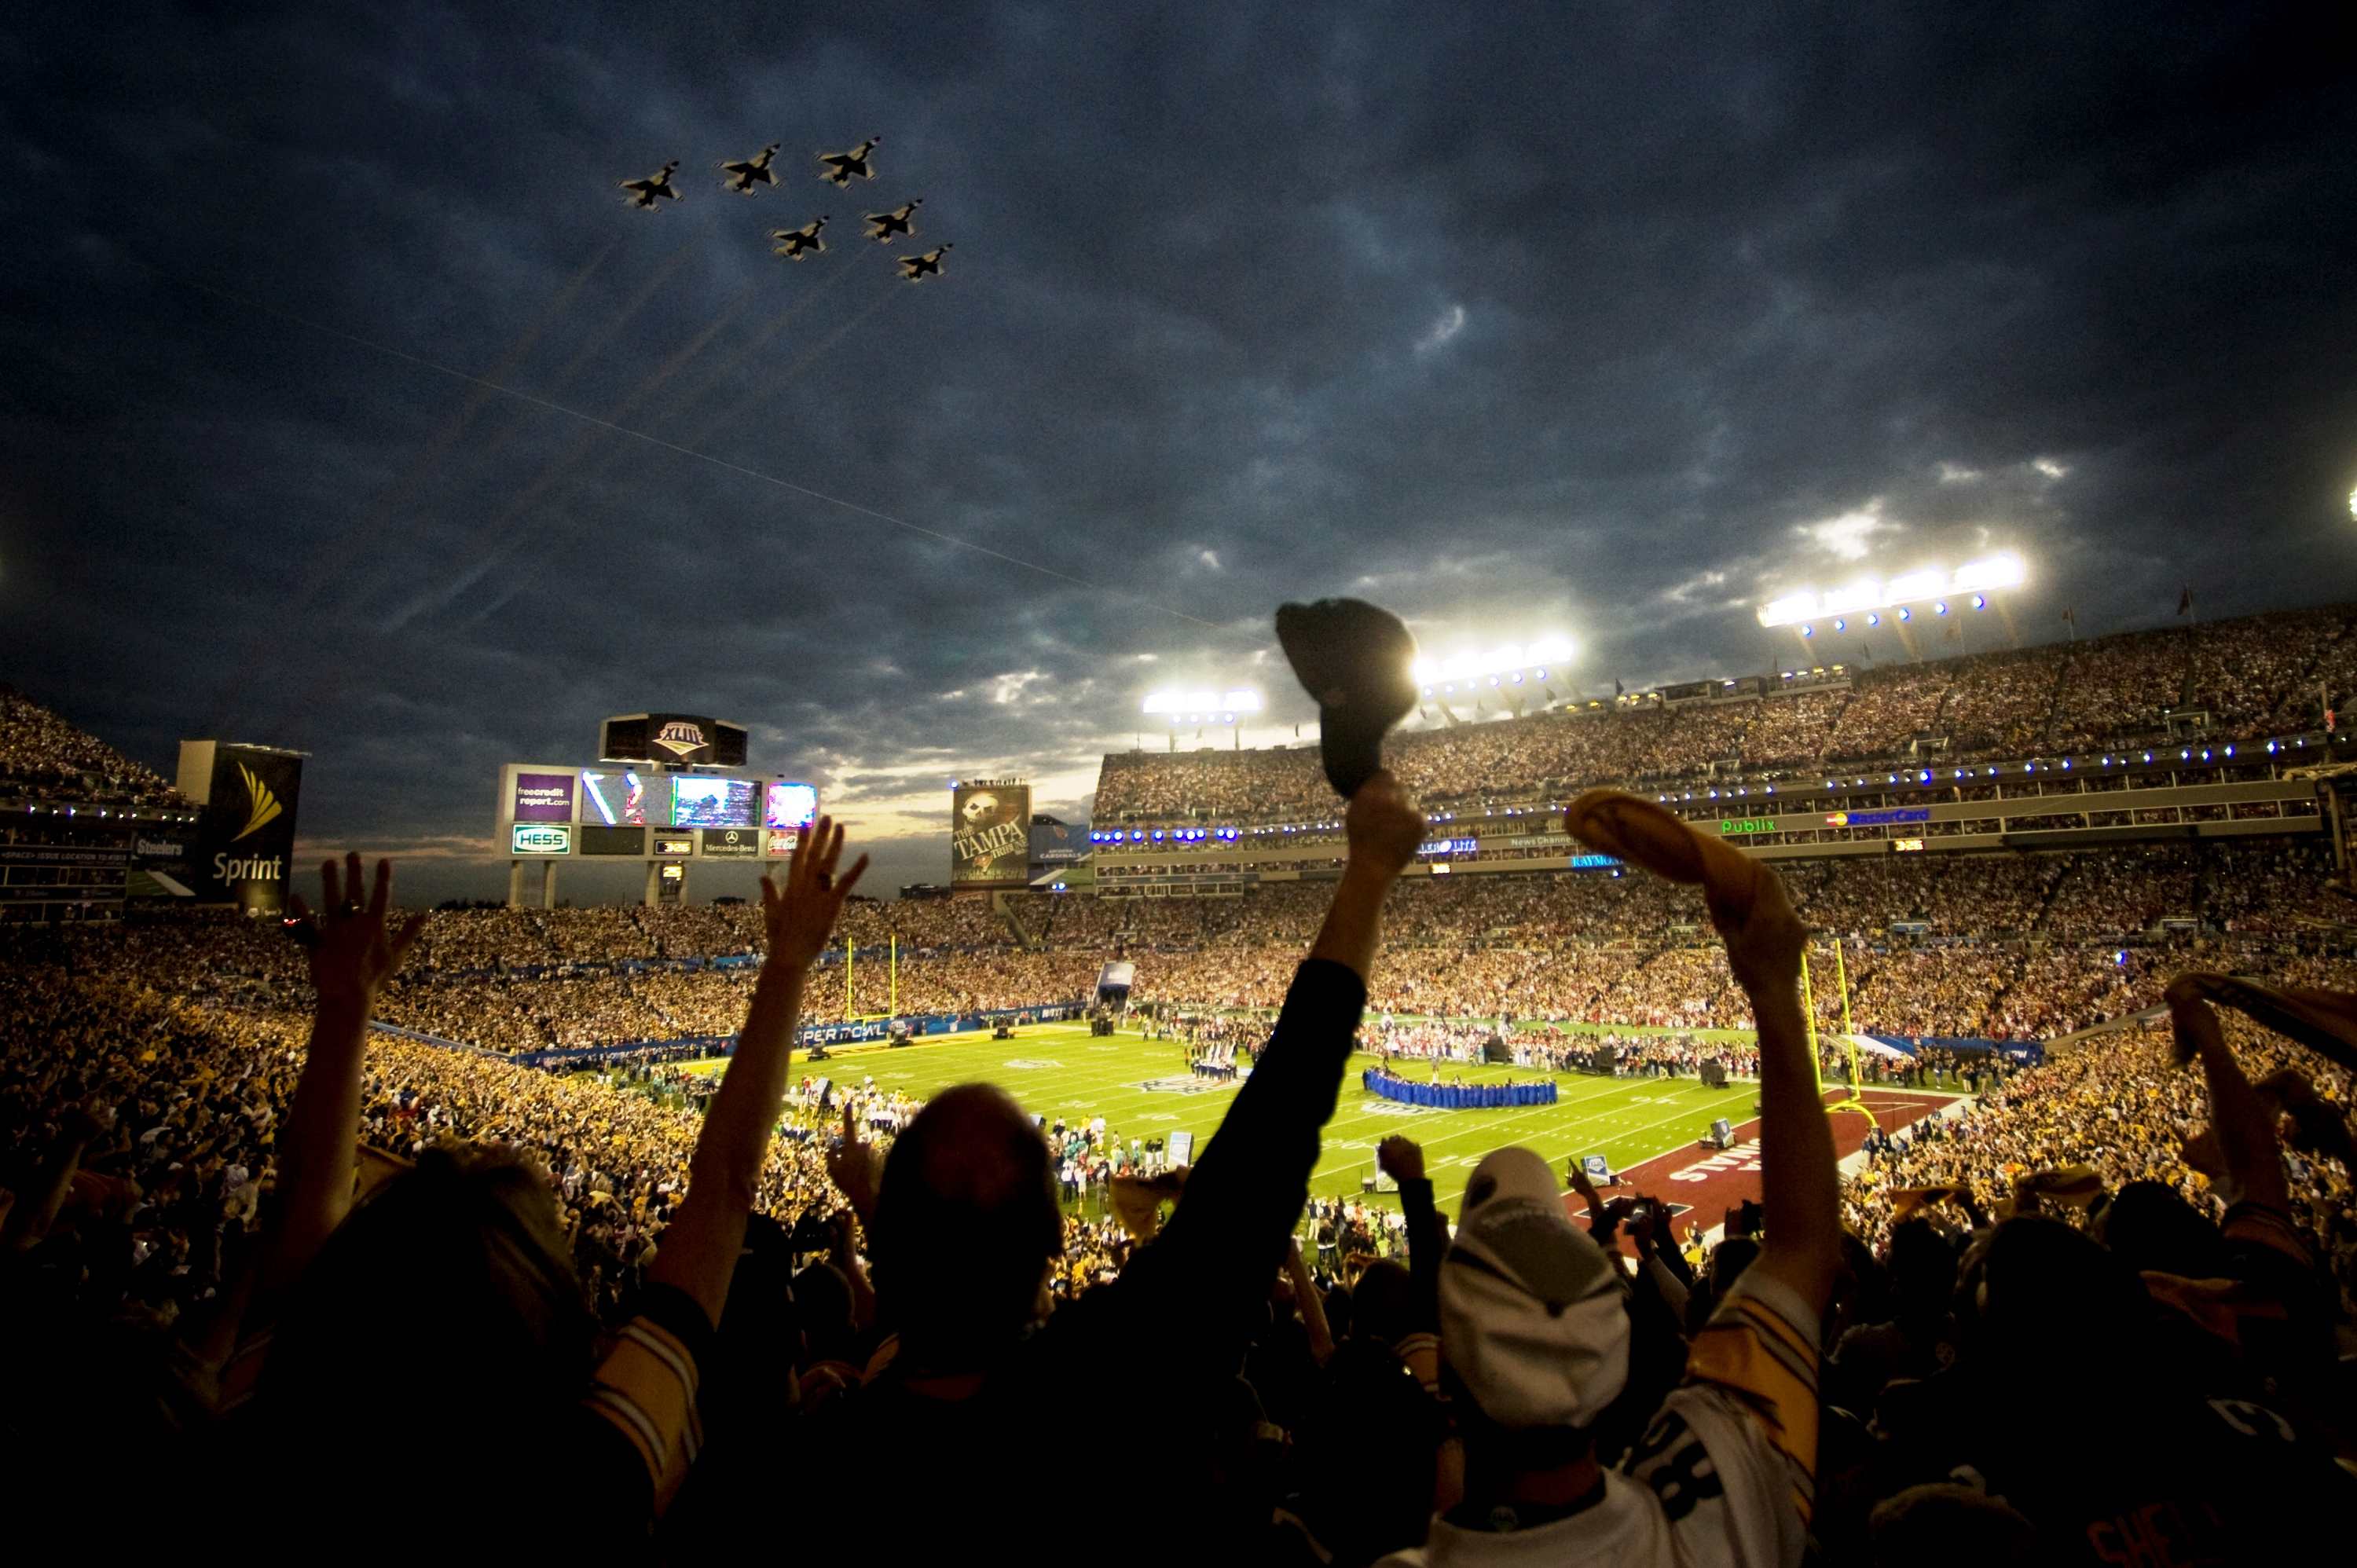 The 2009 US Air Force Thunderbirds fly over Superbowl XLIII in Tampa, Fla., Feb. 2. (RELEASED)